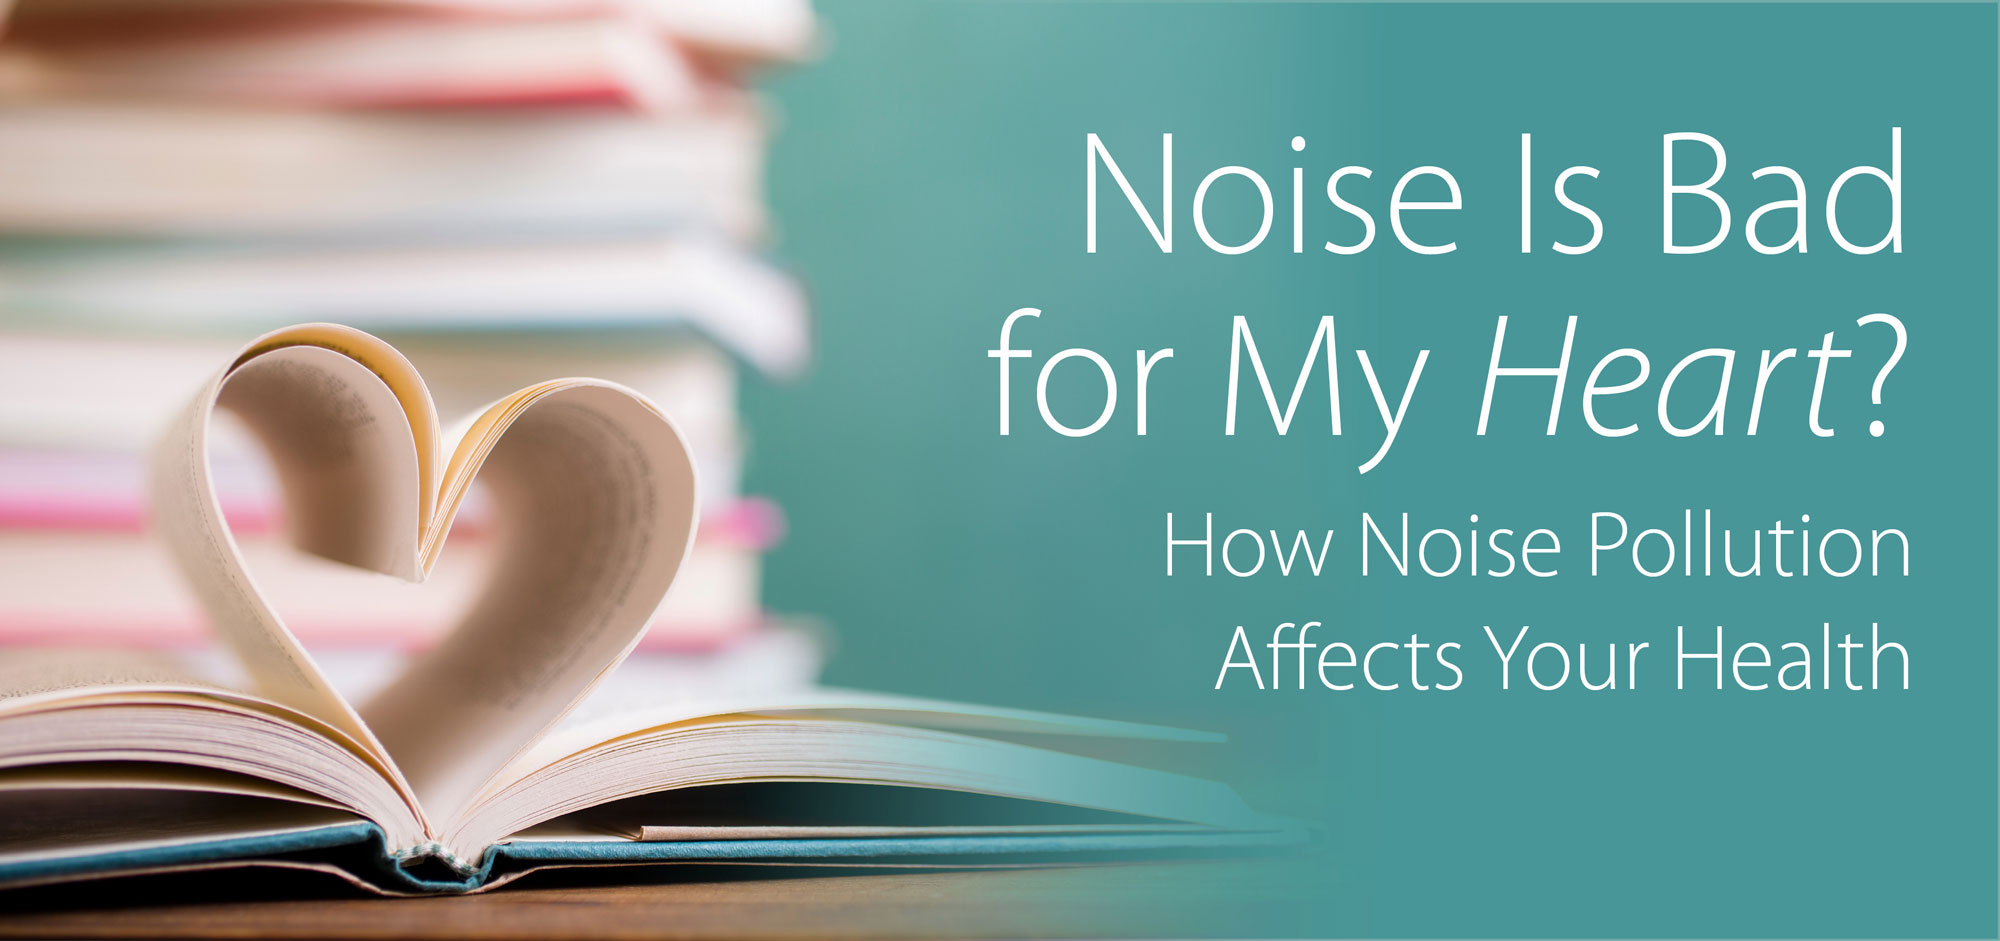 Noise Is Bad for My Heart? How Noise Pollution Affects Your Health